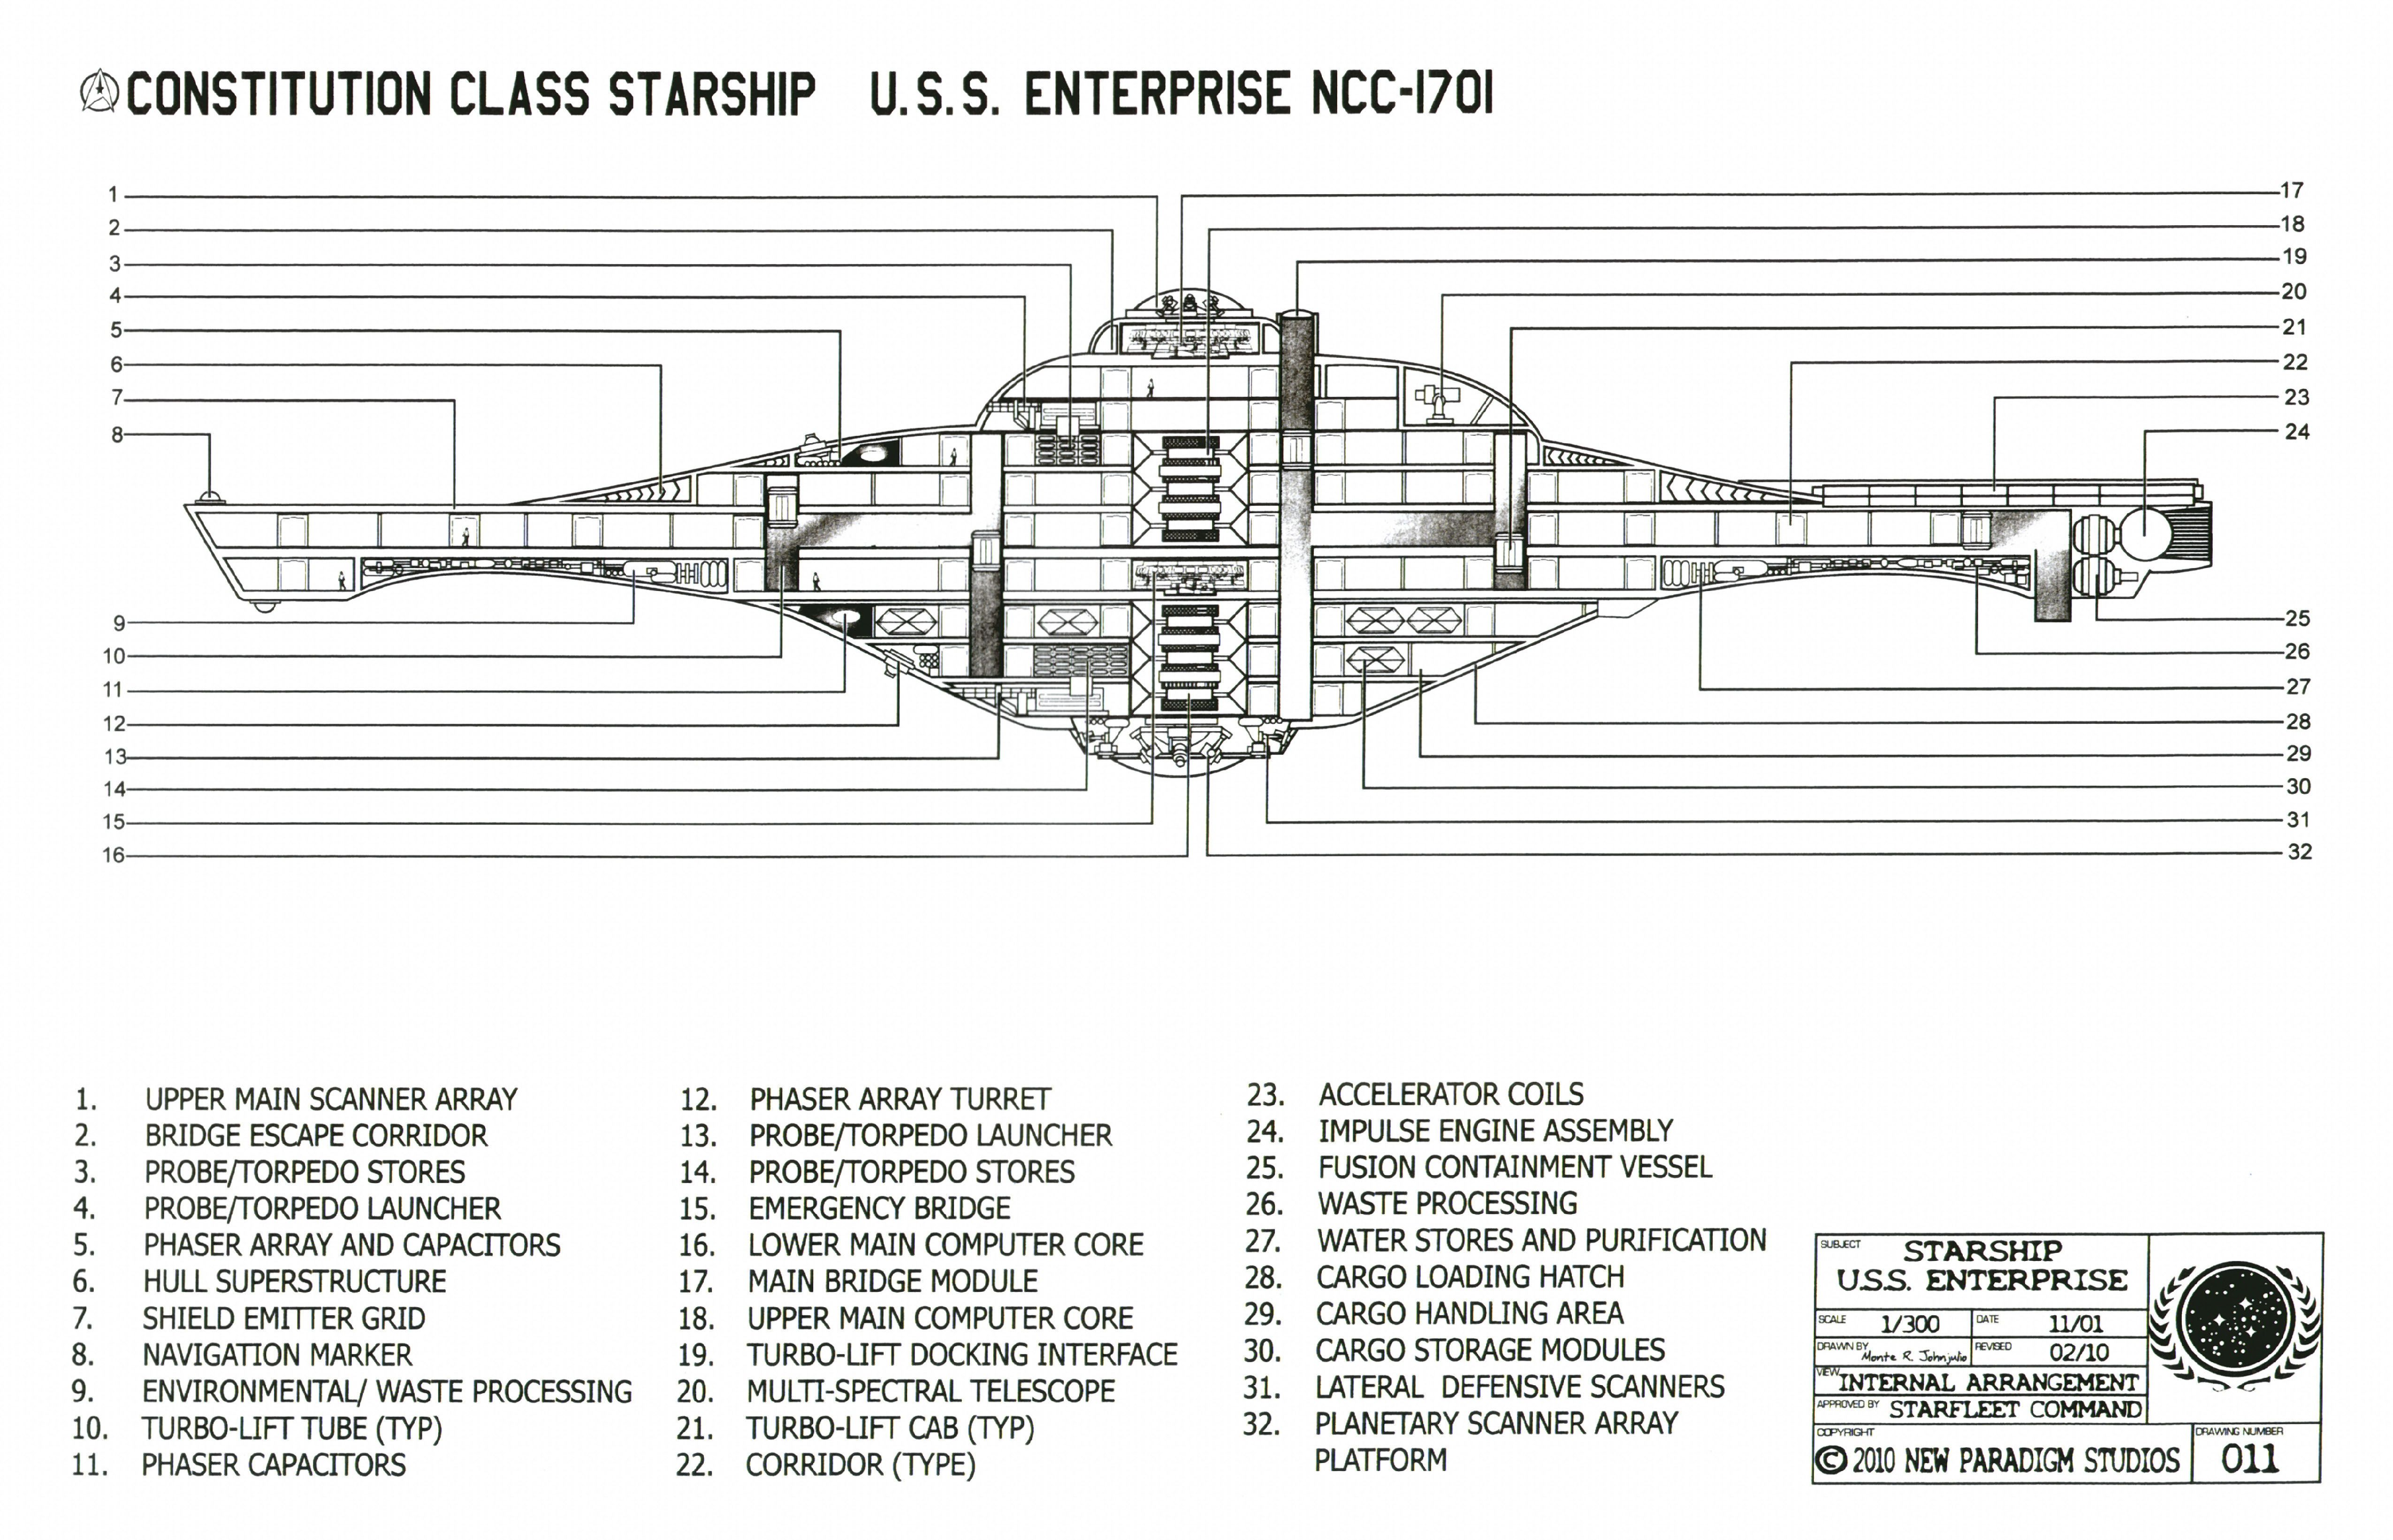 Star Trek Blueprints Constitution Class Starship USS Enterprise